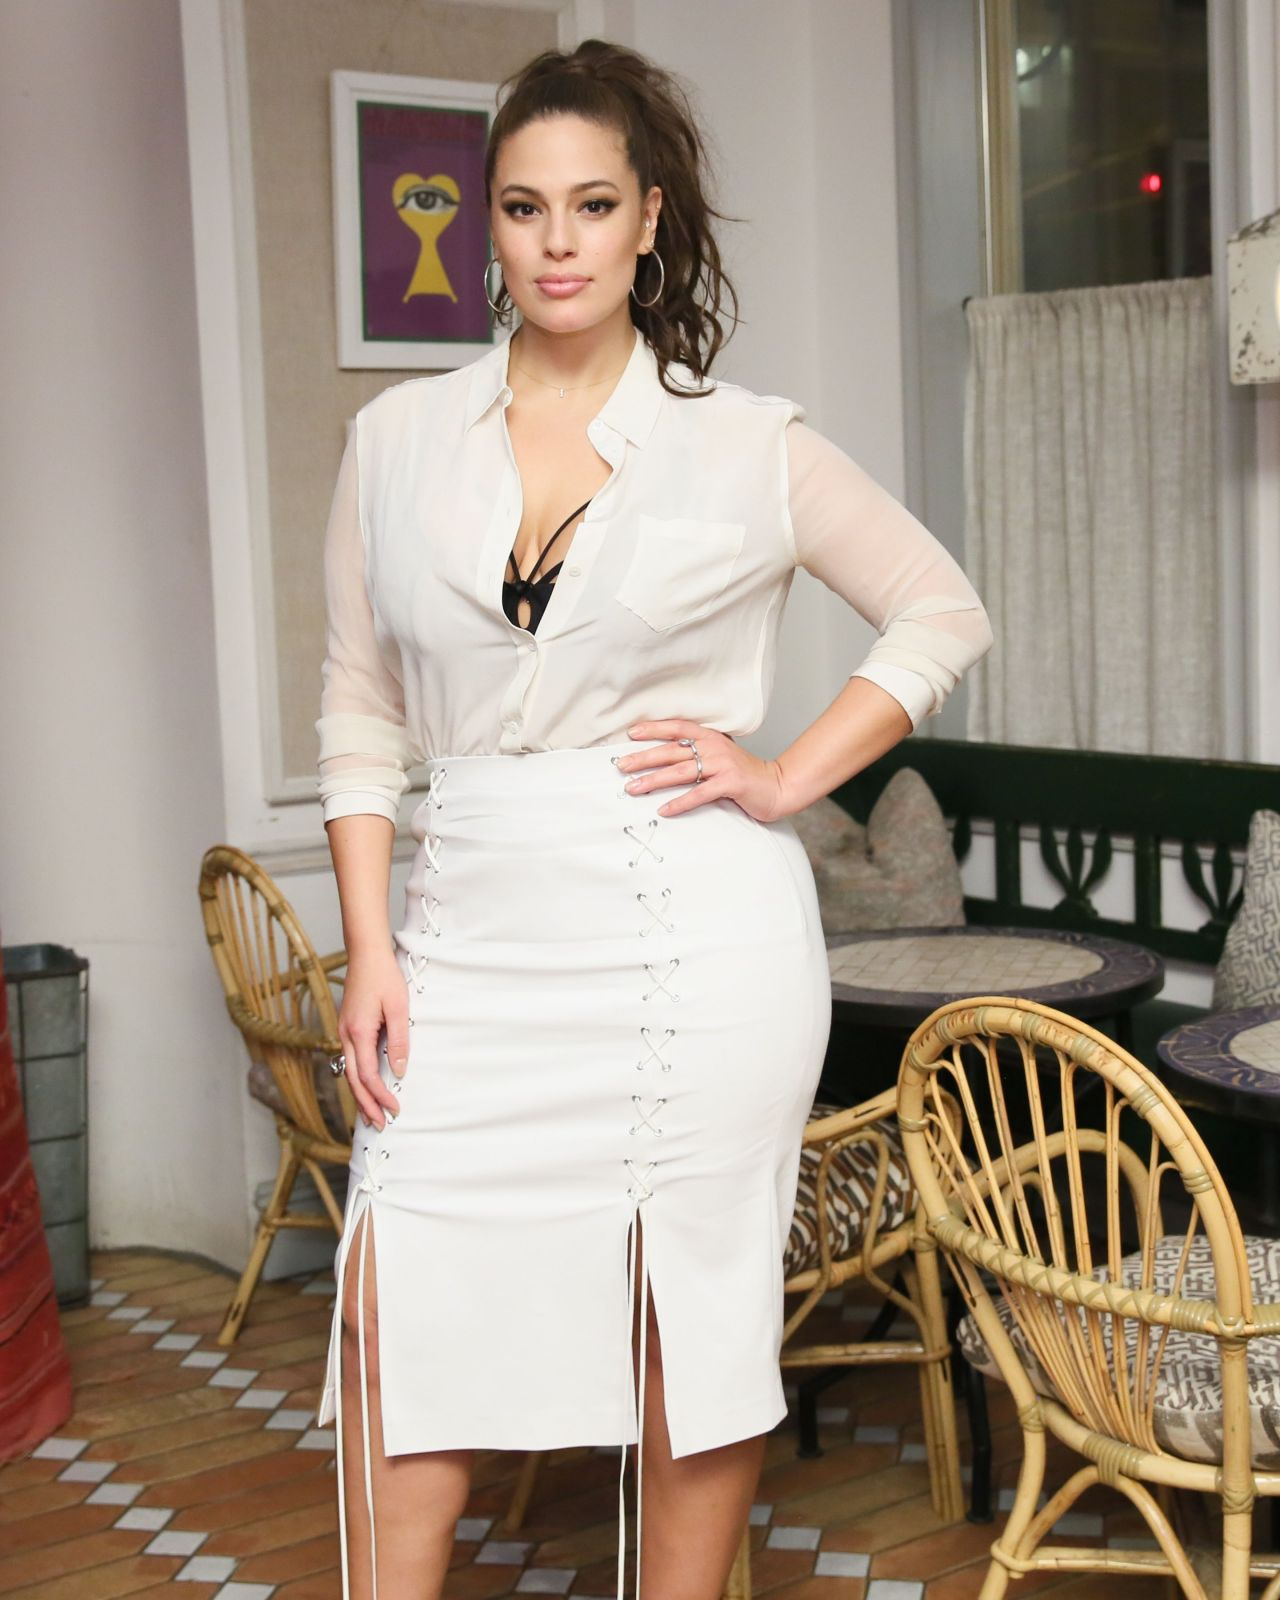 Ashley Graham: Ashley Graham Latest Photos